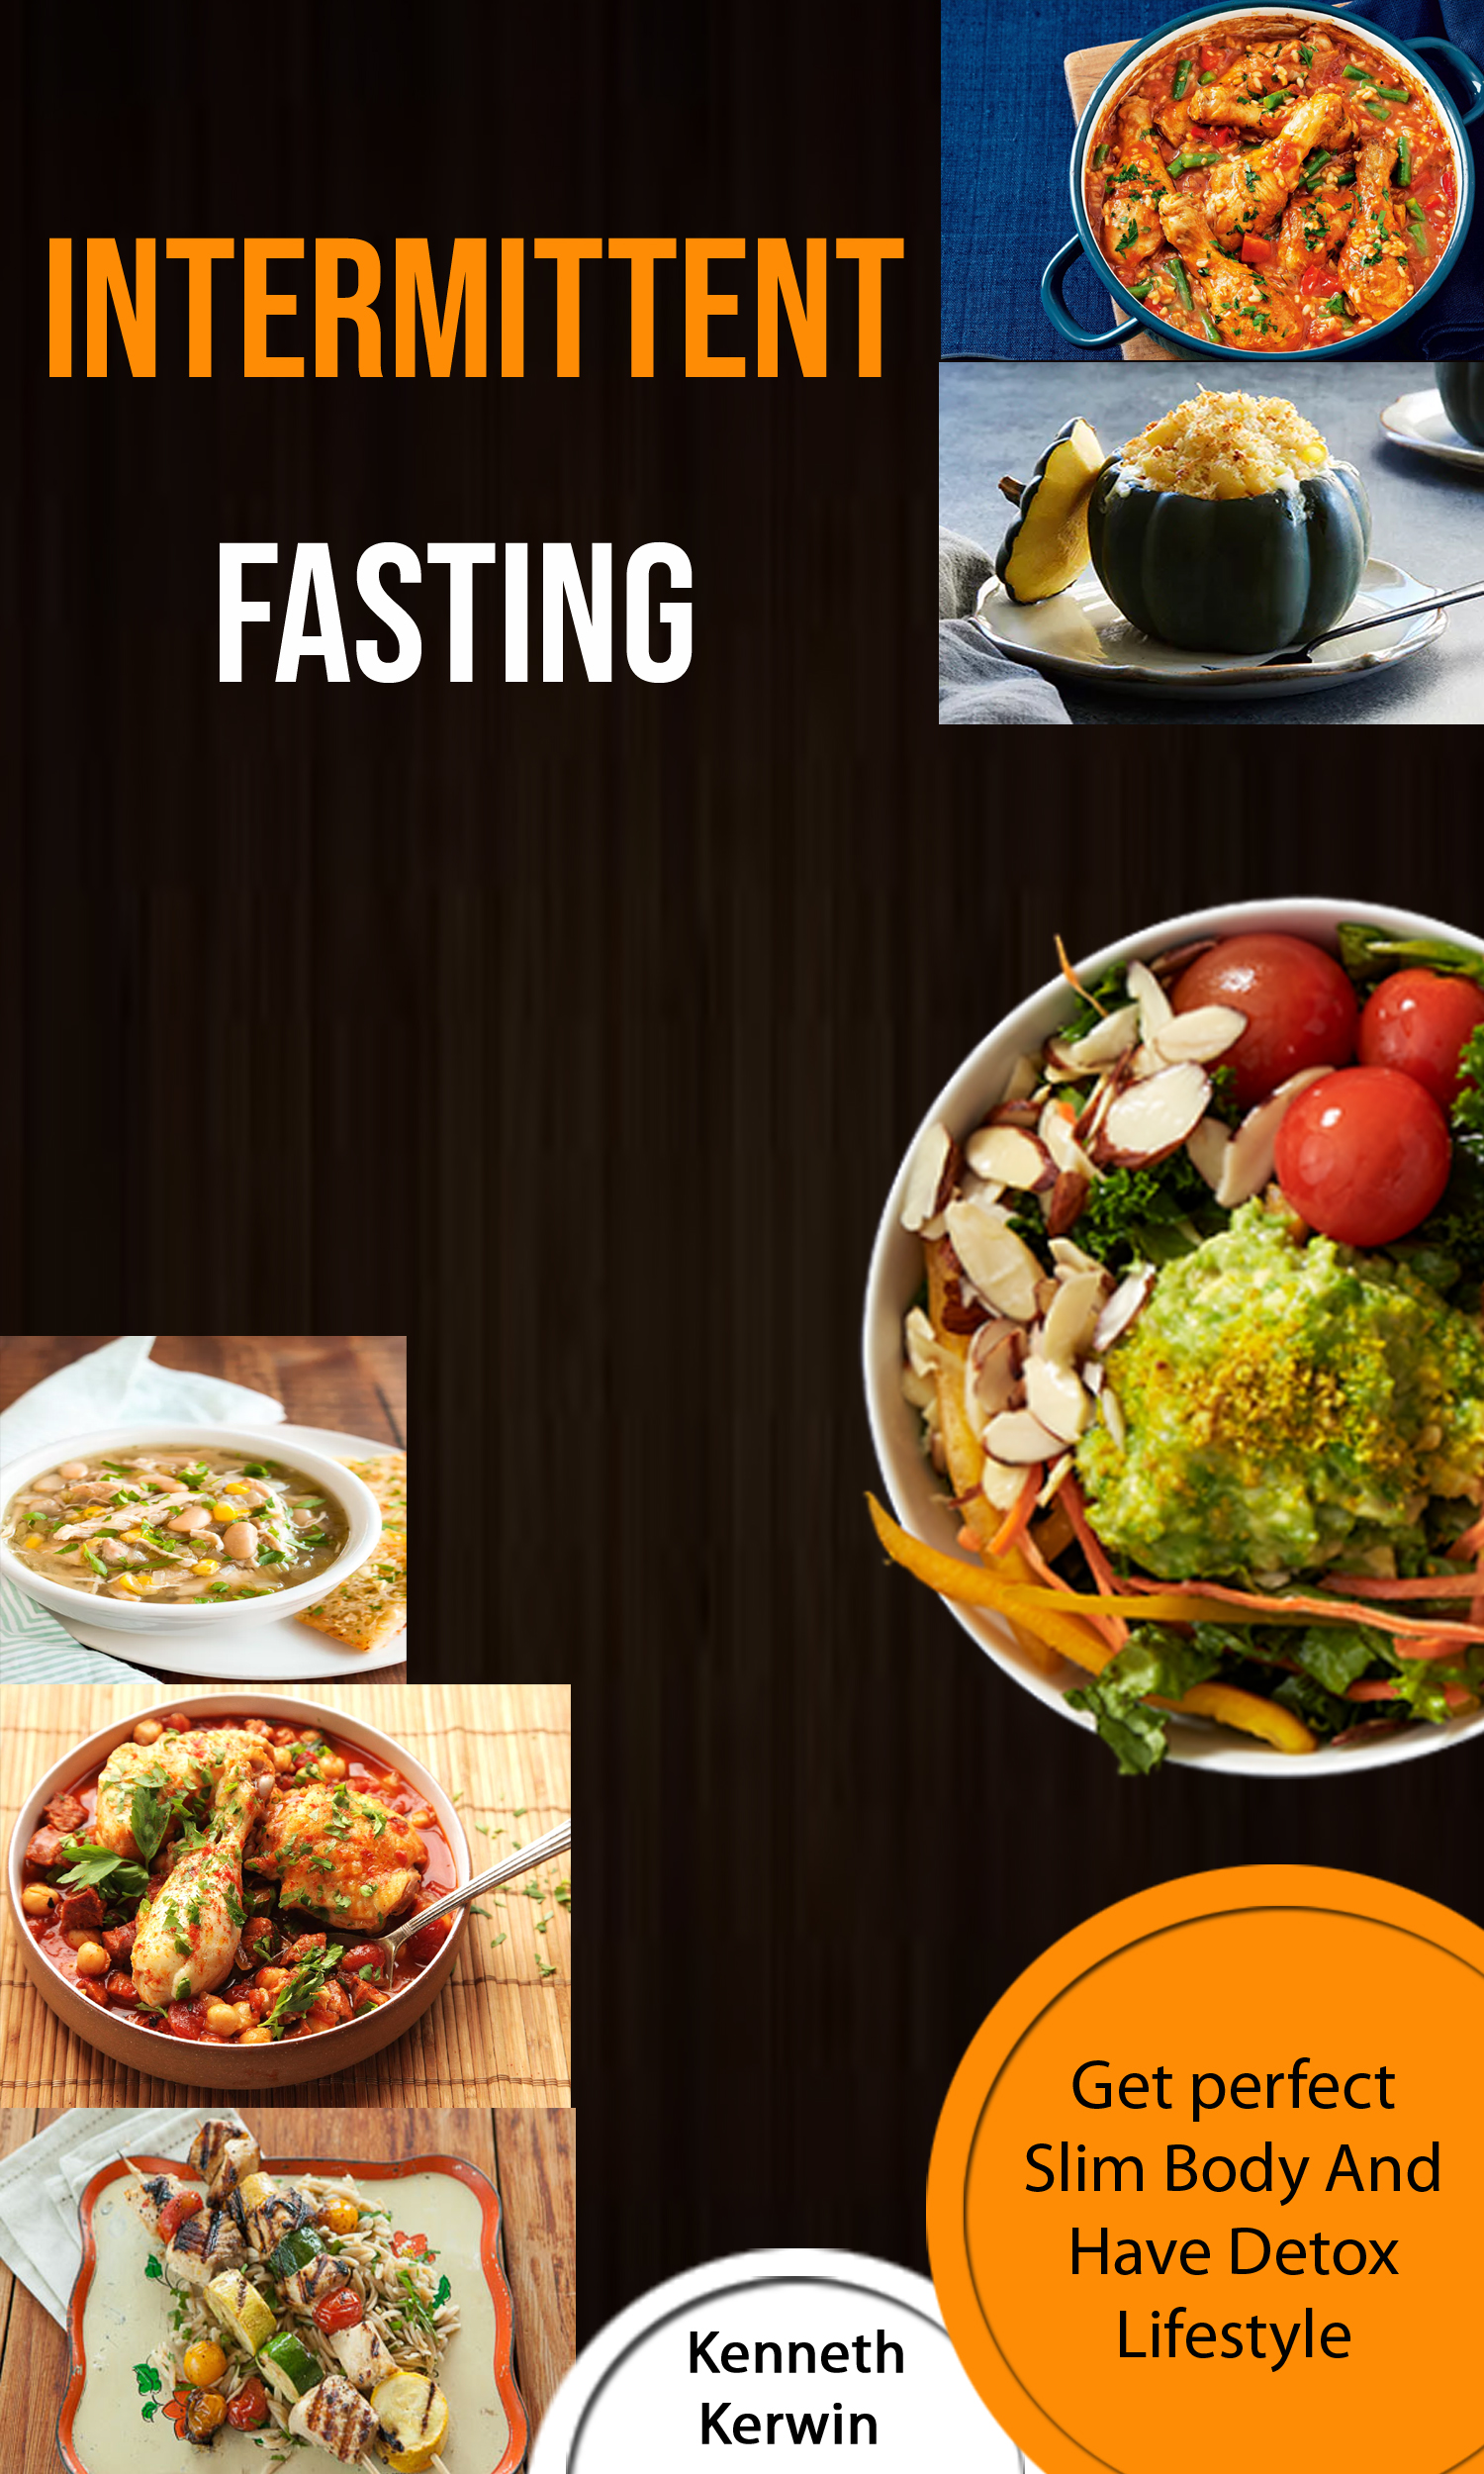 Intermittent fasting: get perfect slim body and have detox lifestyle